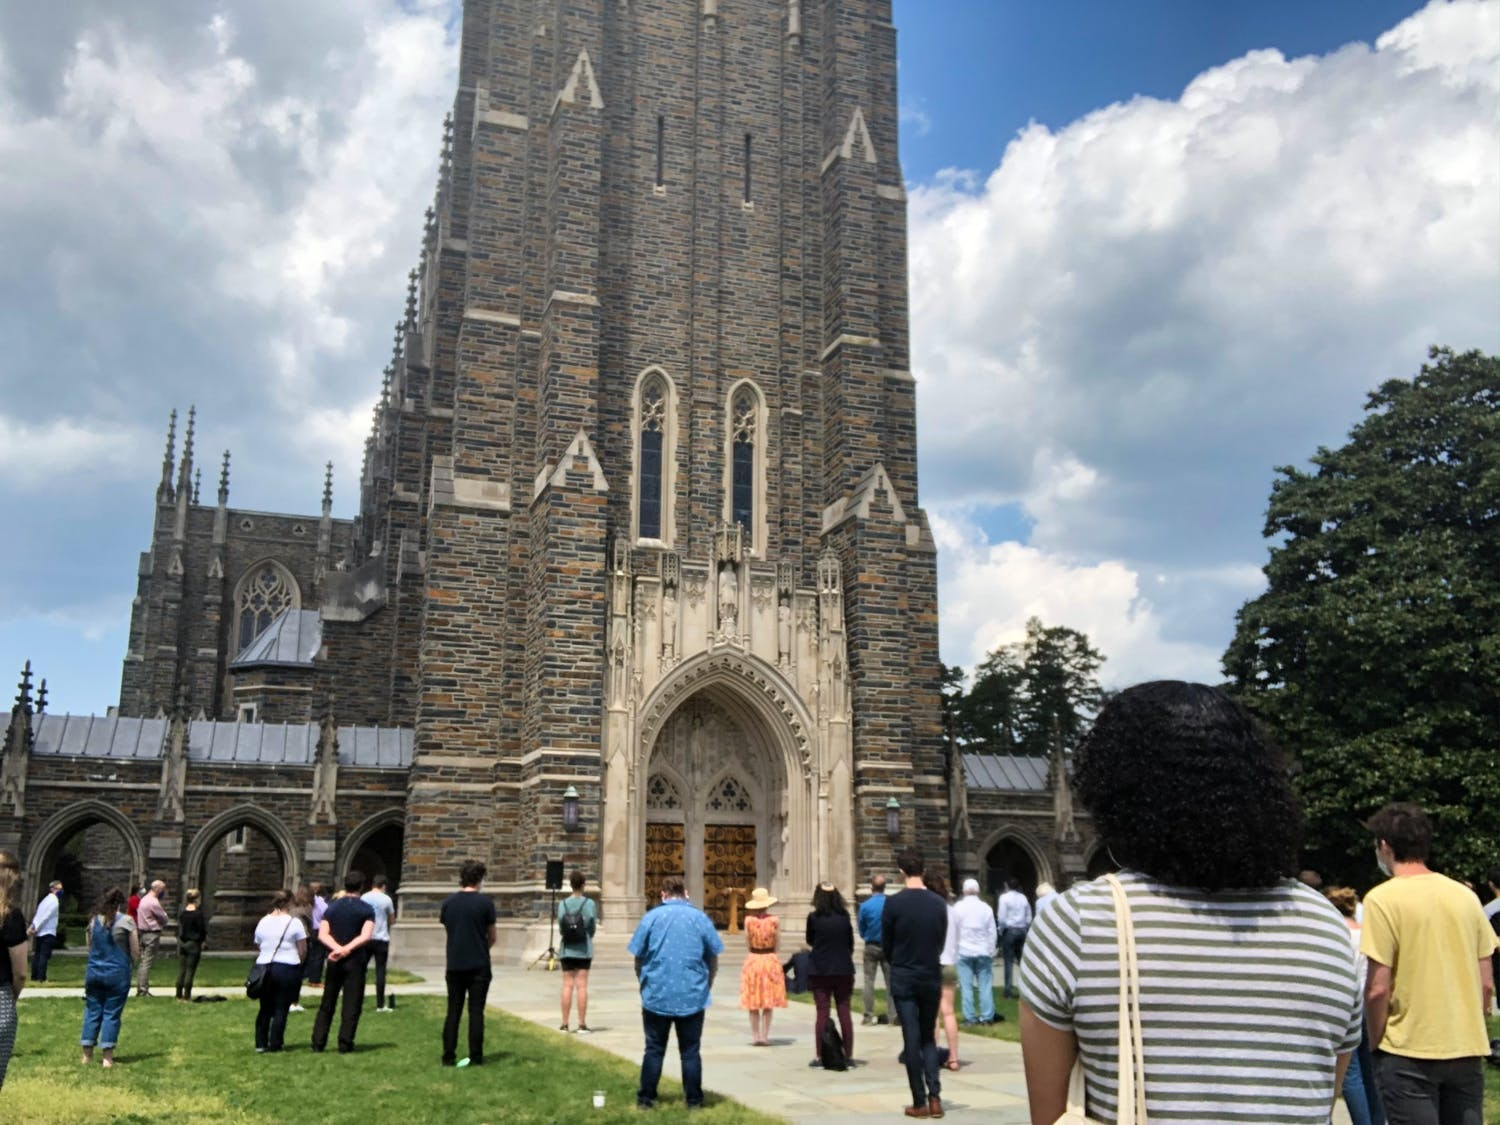 Administrators and the chair of the African & African American studies department reflected on the outcome of Derek Chauvin's trial on Wednesday, while students and other community members gathered on the quad in front of the Chapel to watch.